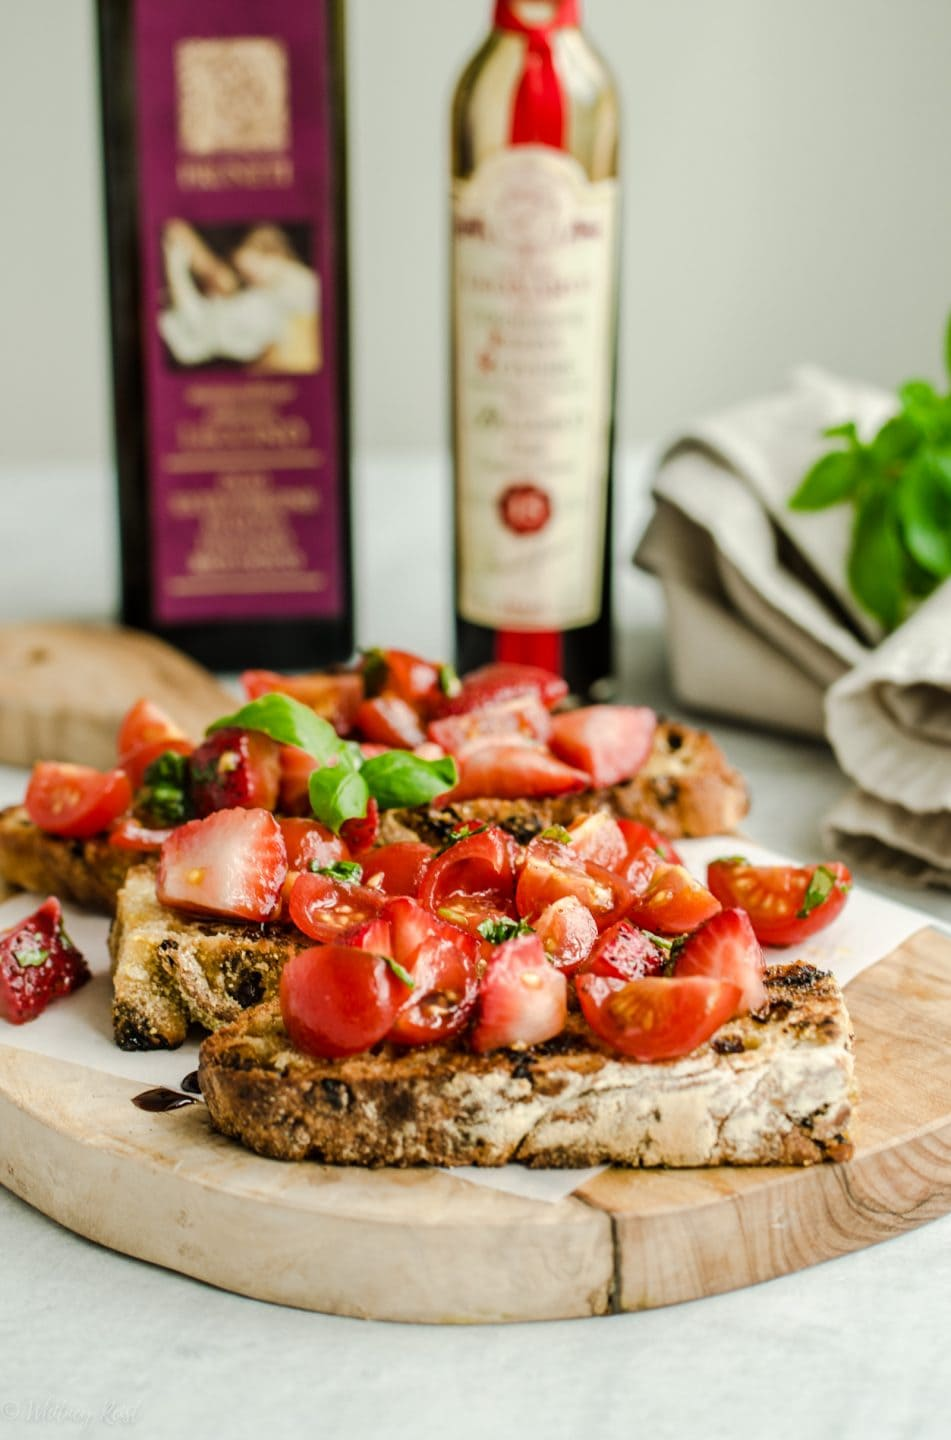 A side shot of strawberry tomato bruschetta on a cutting board with bottles of olive oil and balsamic vinegar in the background.